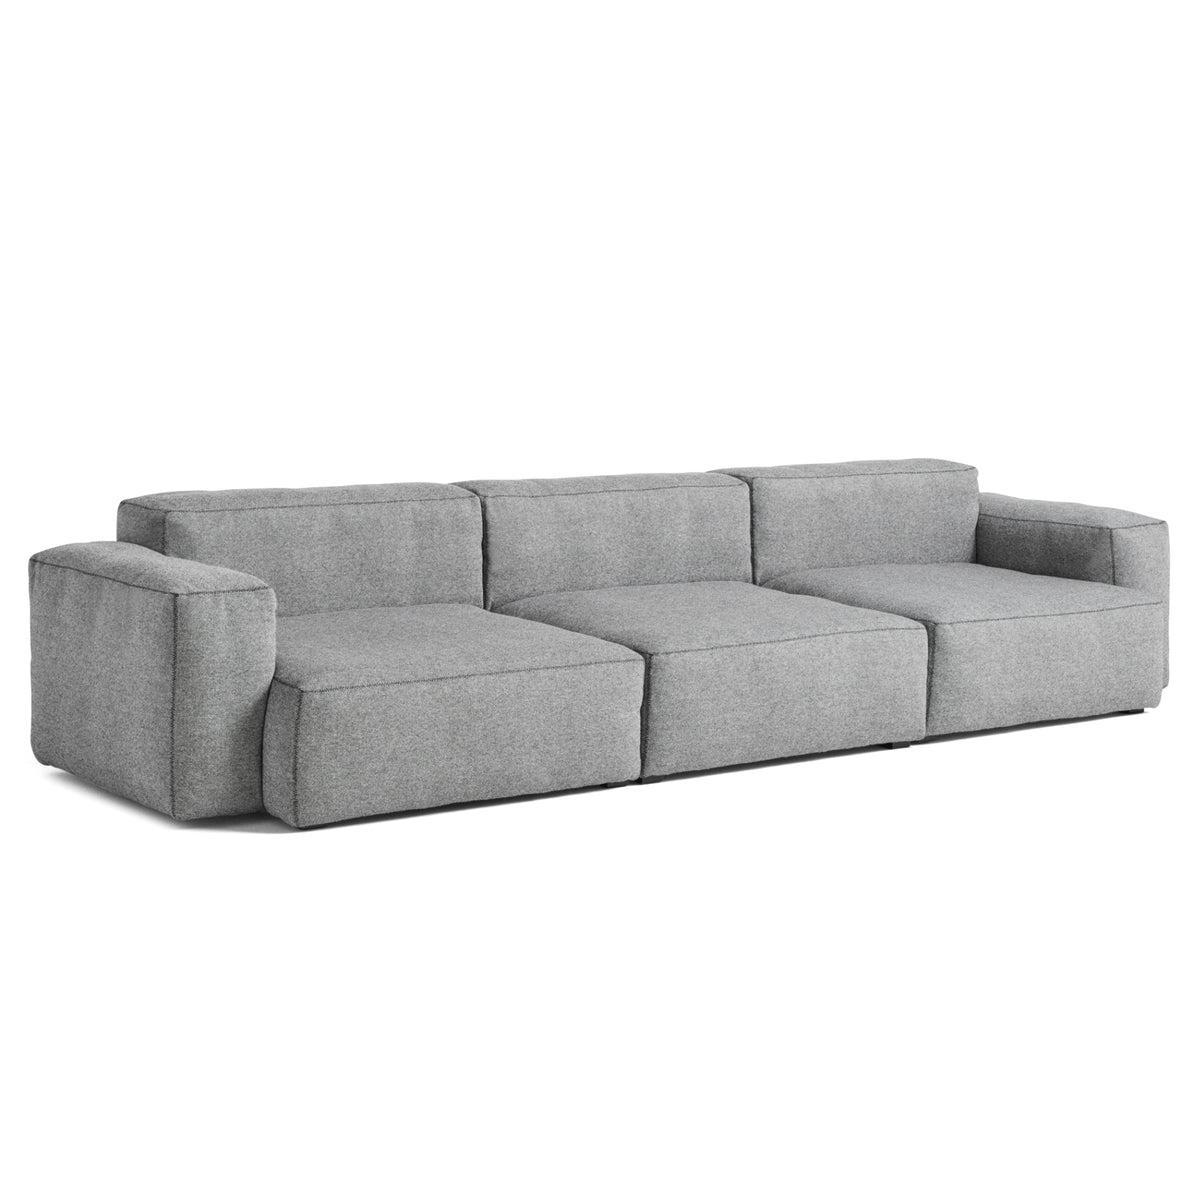 HAY Mags Soft Fabric Office Sofa Hallingdal